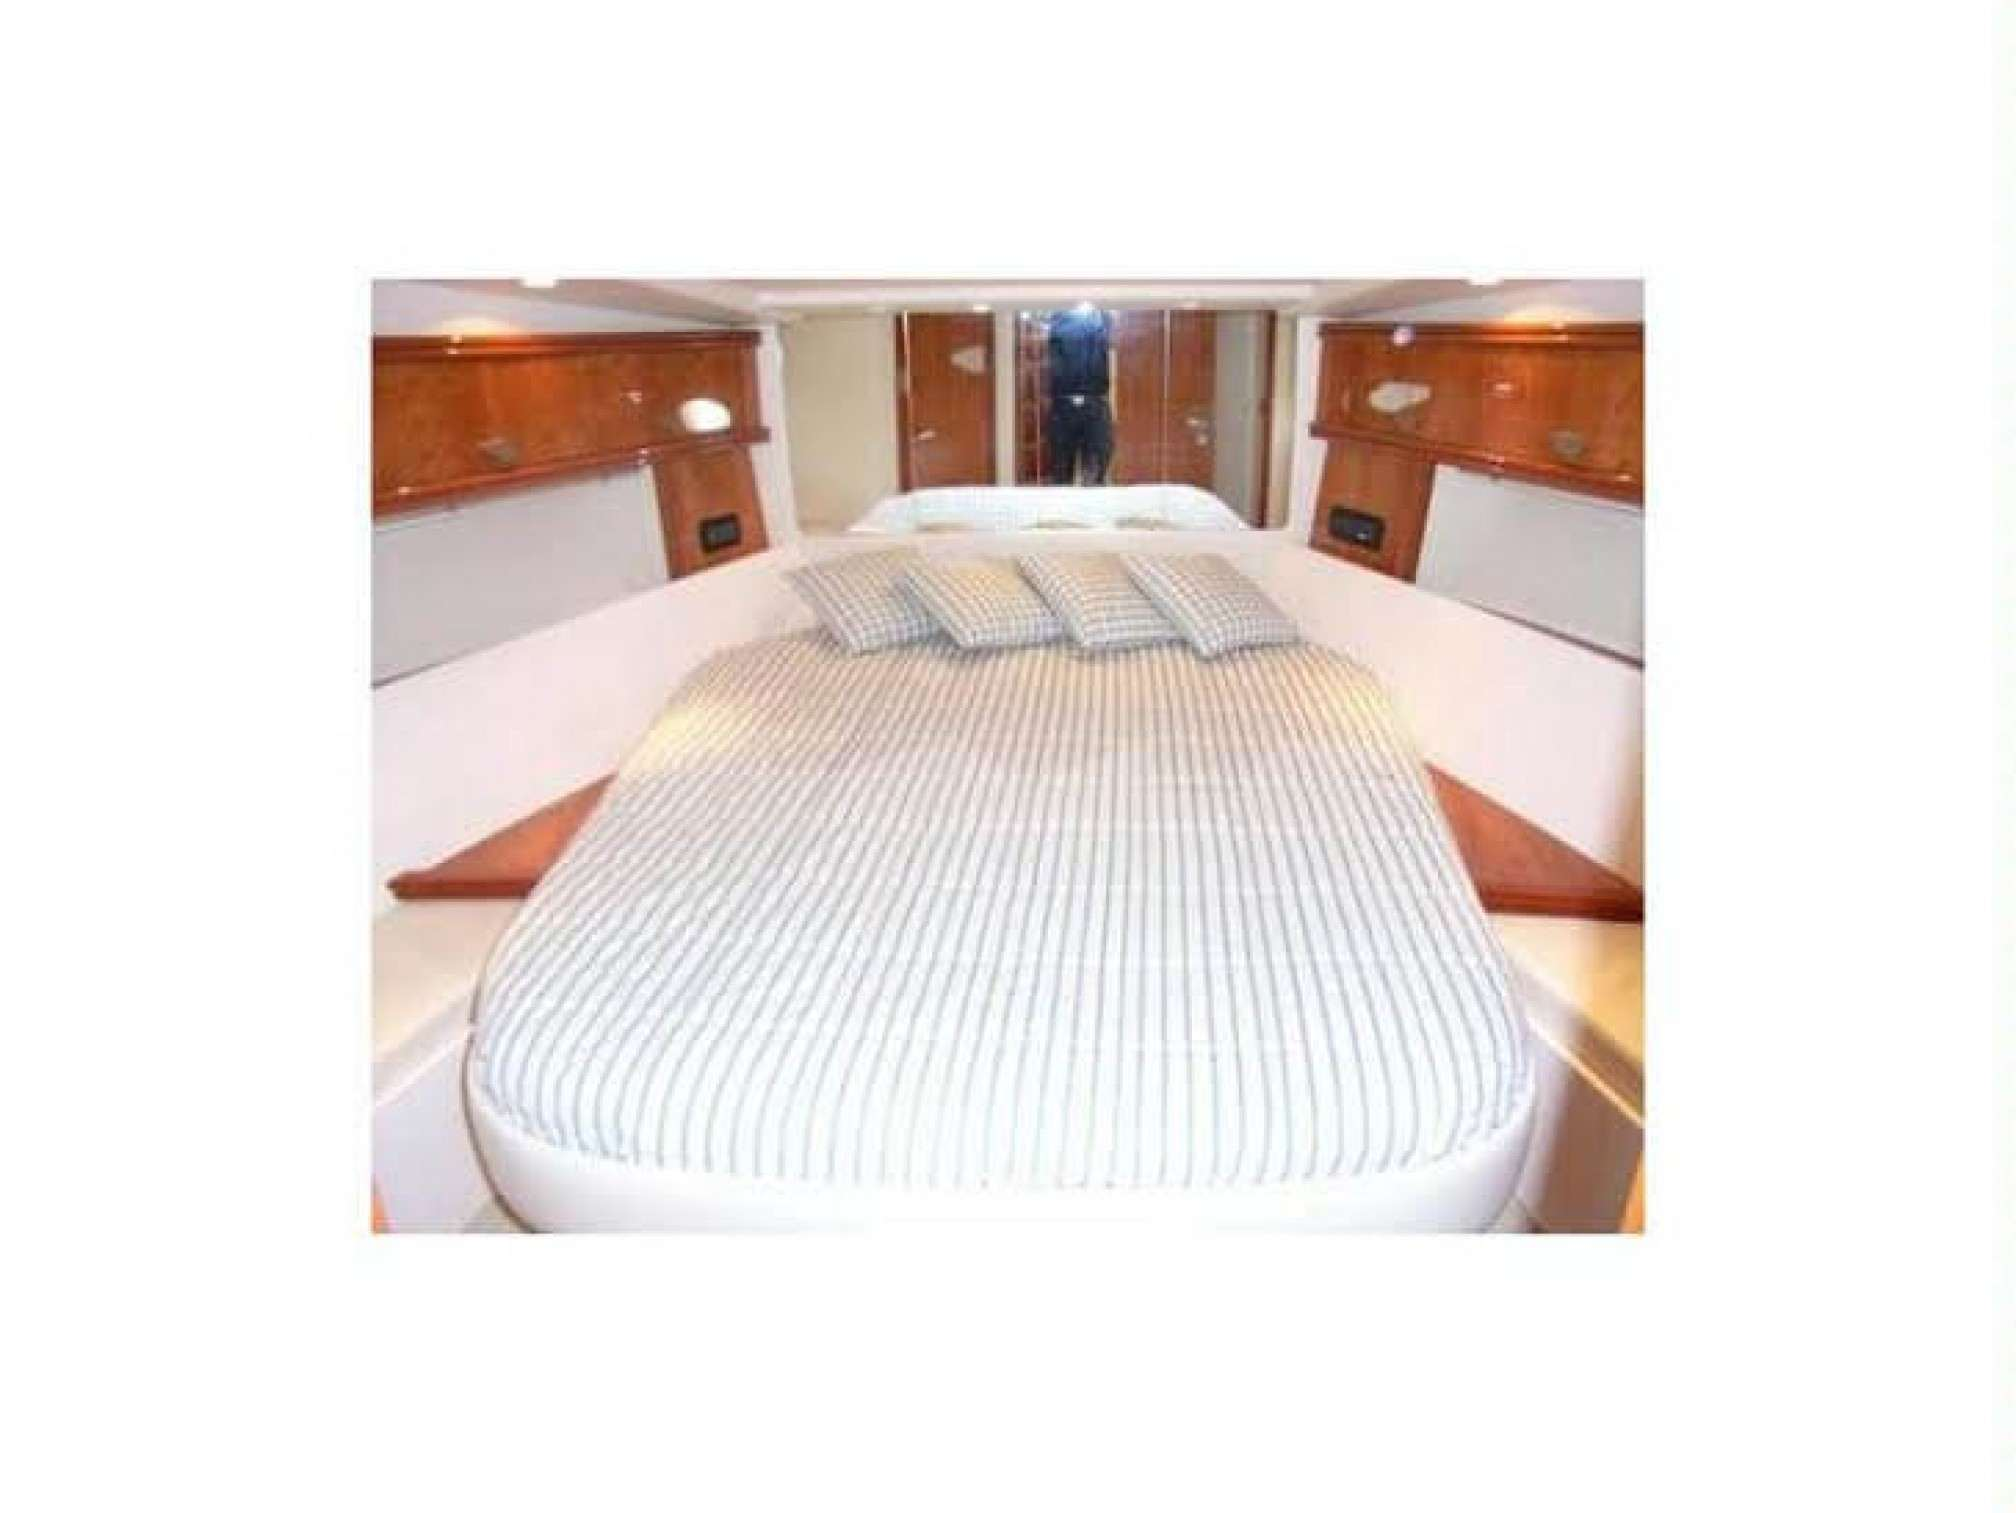 Pershing 45 motorboat charter cabin